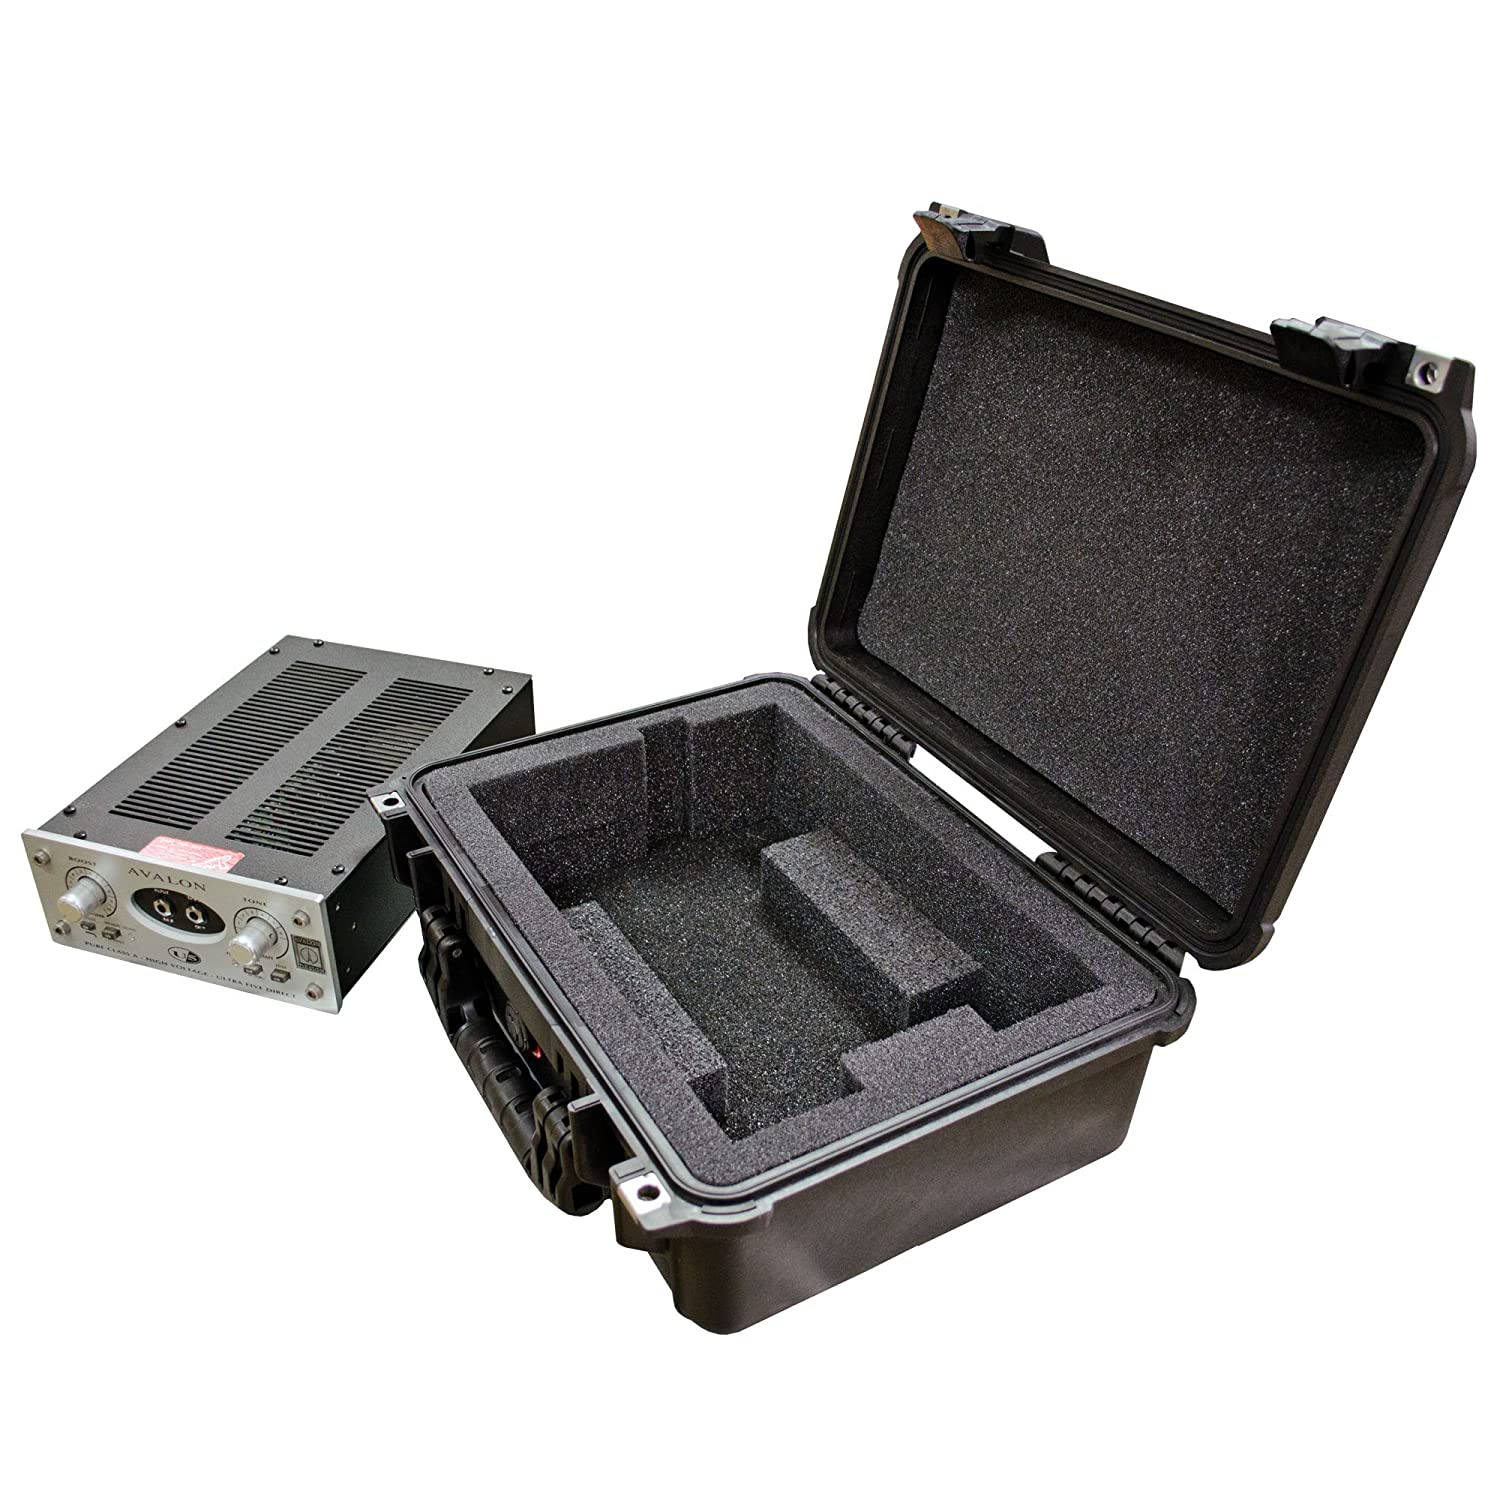 LM Cases 15-0168 Avalon U5 Waterproof Directbox Case Bass Guitar Electronics LM Engineering Inc.